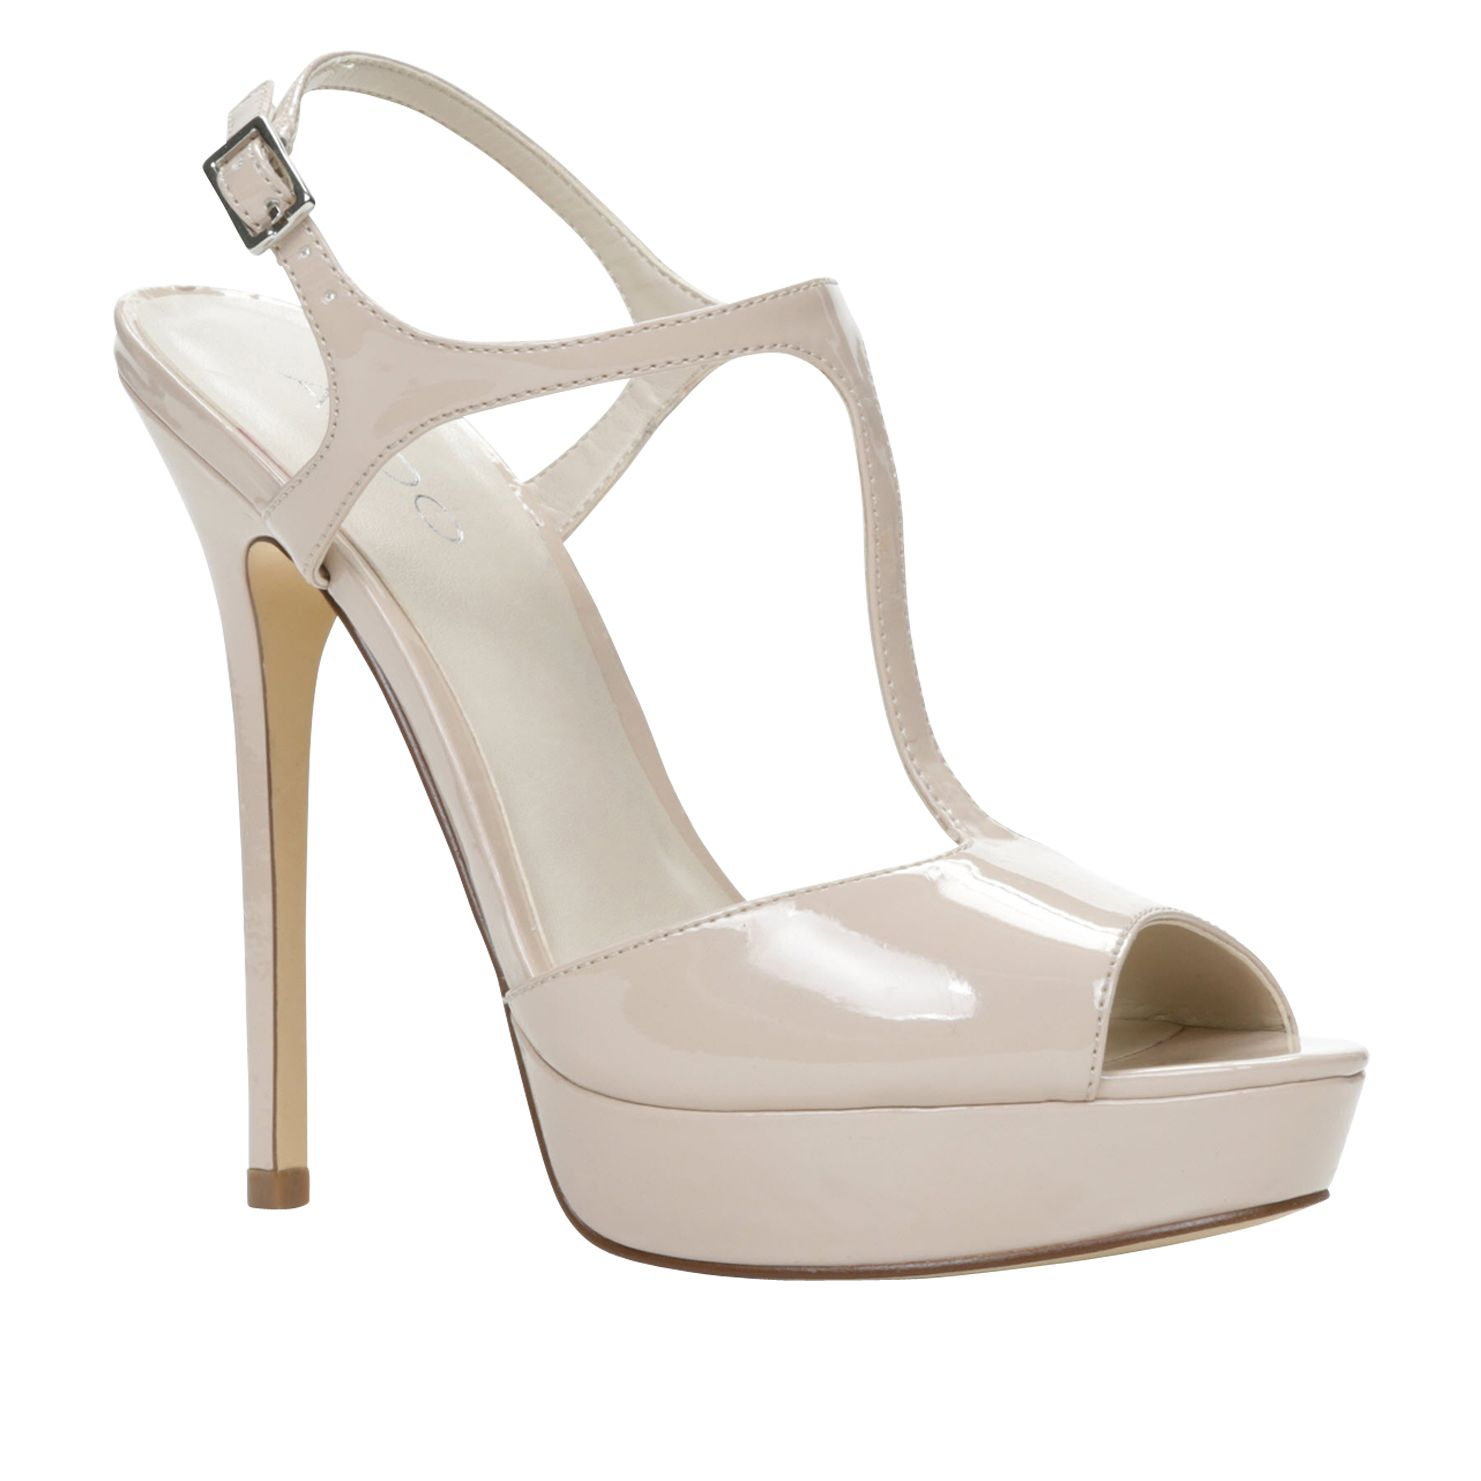 Kohlenberg peep toe platform shoes